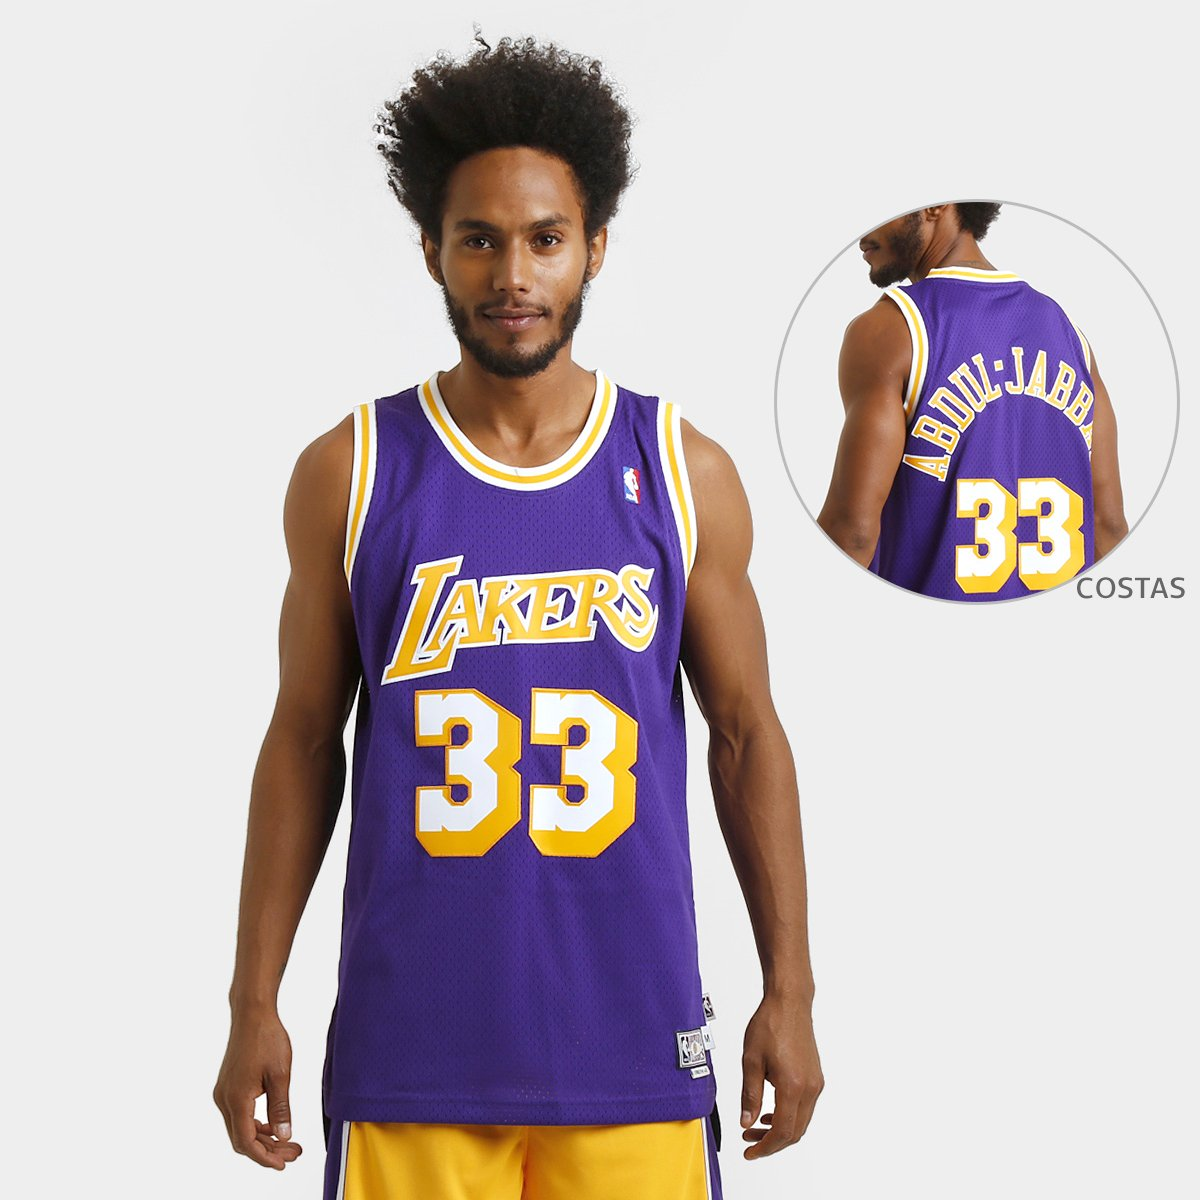 a94cdf04d Camiseta Regata Adidas NBA Retired Los Angeles Lakers - Abdul Jabbar -  Compre Agora